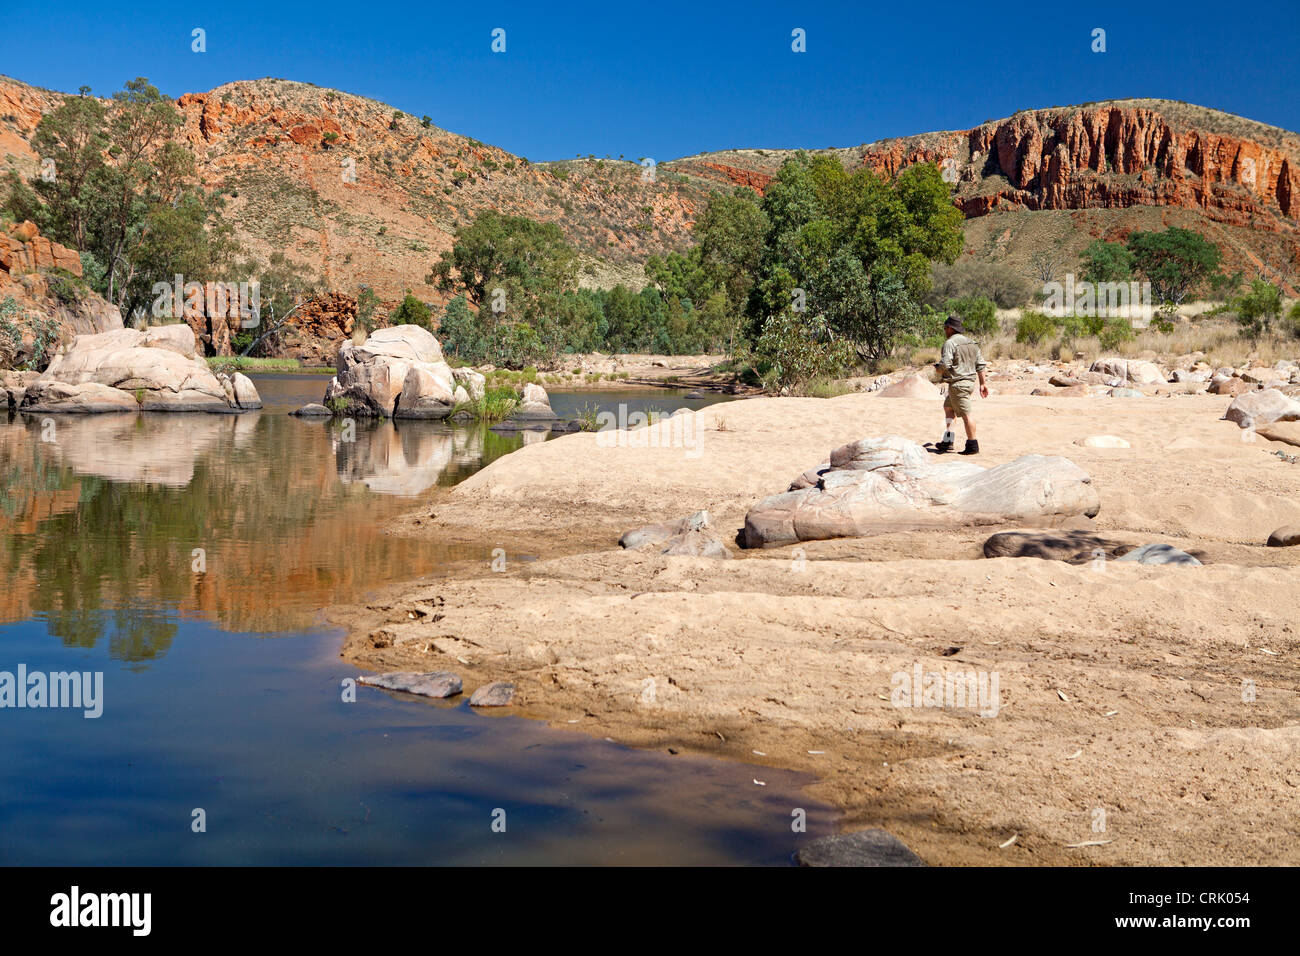 Waterhole in Ormiston Pound in the West MacDonnell Ranges - Stock Image